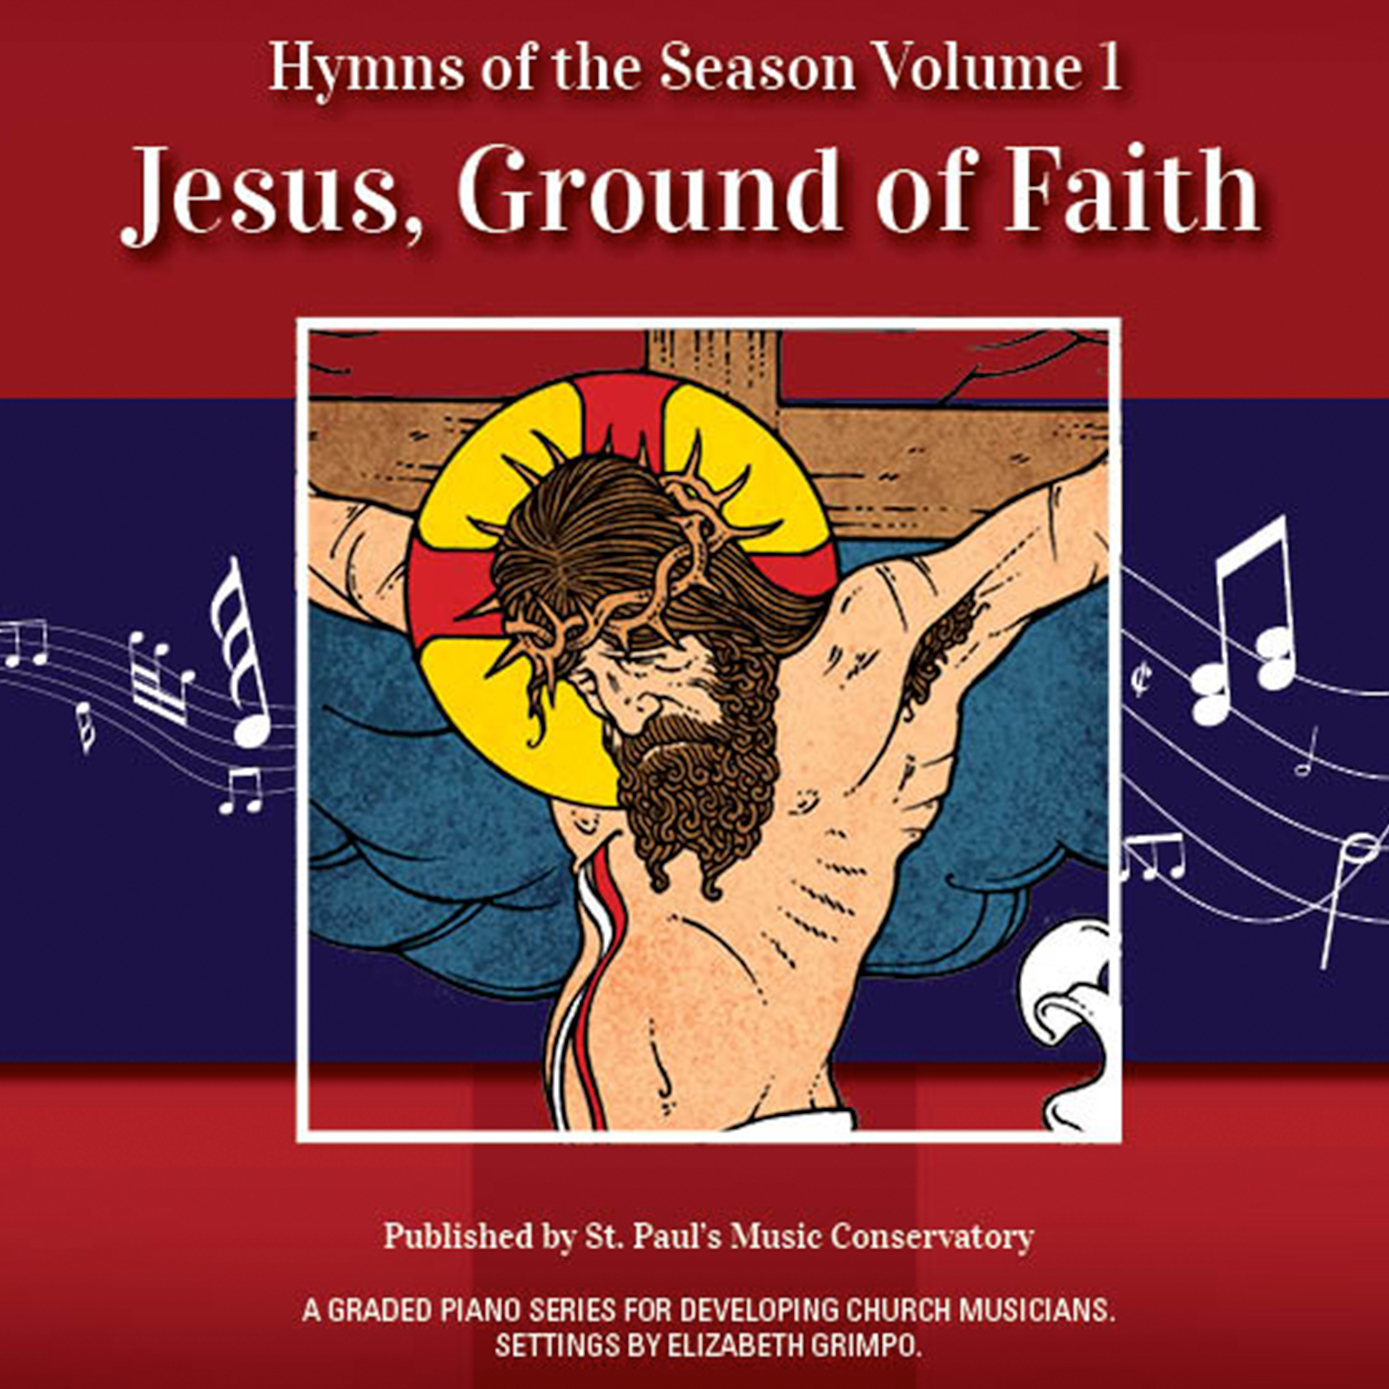 Hymns of the Season Volume 1